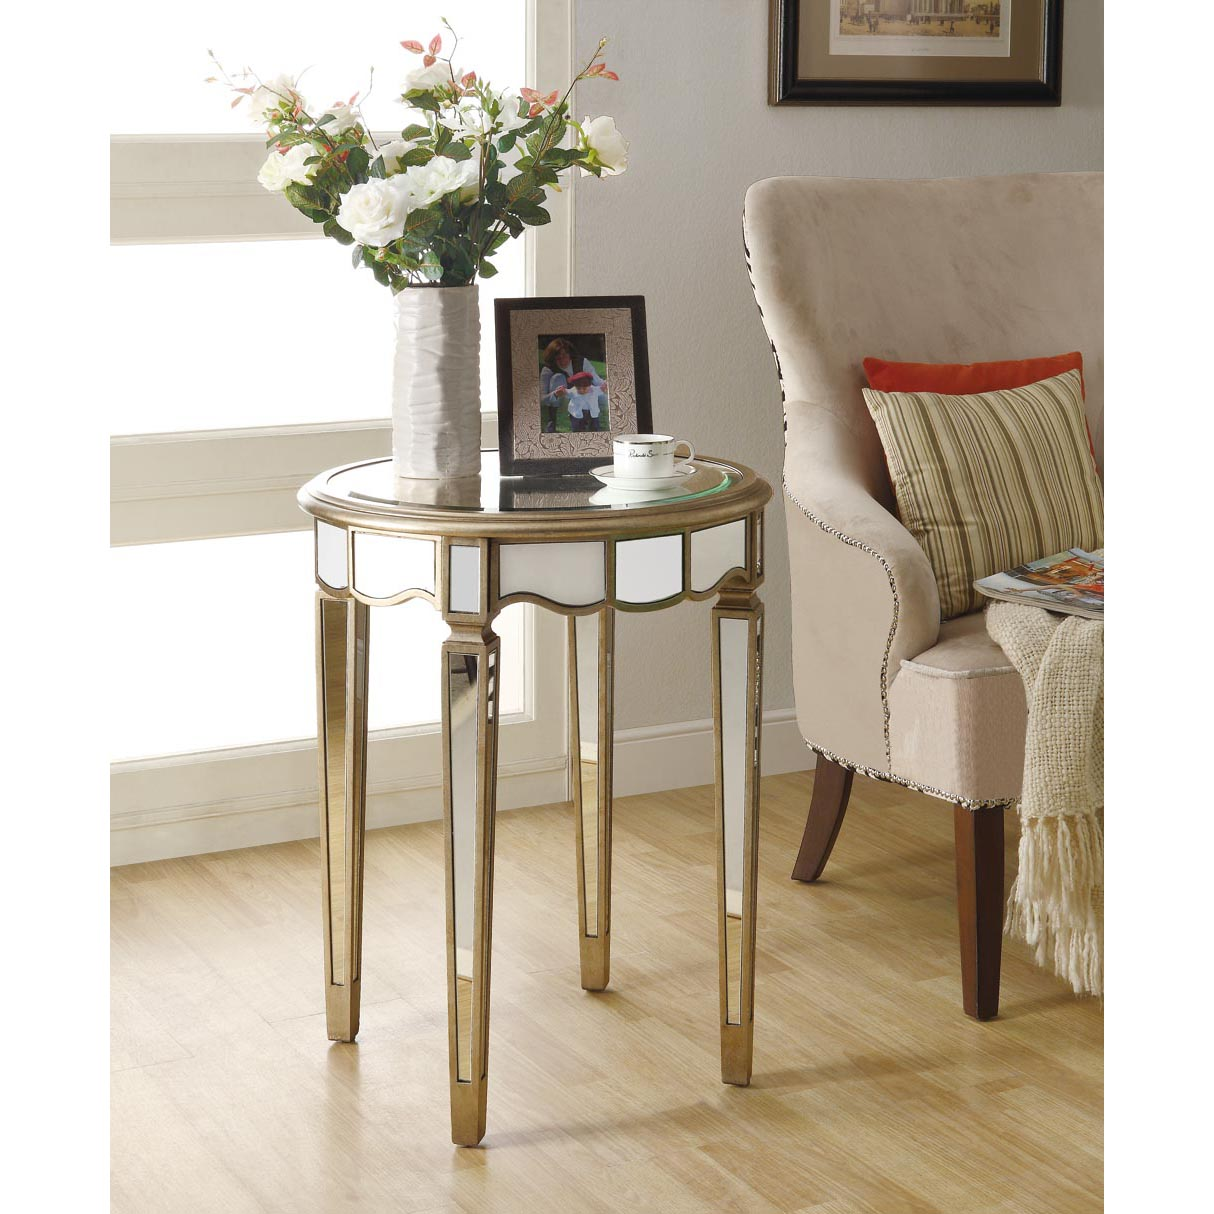 nice mirrored accent table with bobreuterstl drawer coffee under laminate paint chair side target black storage end shoe tidy babcock furniture website flowers dog cage round tall